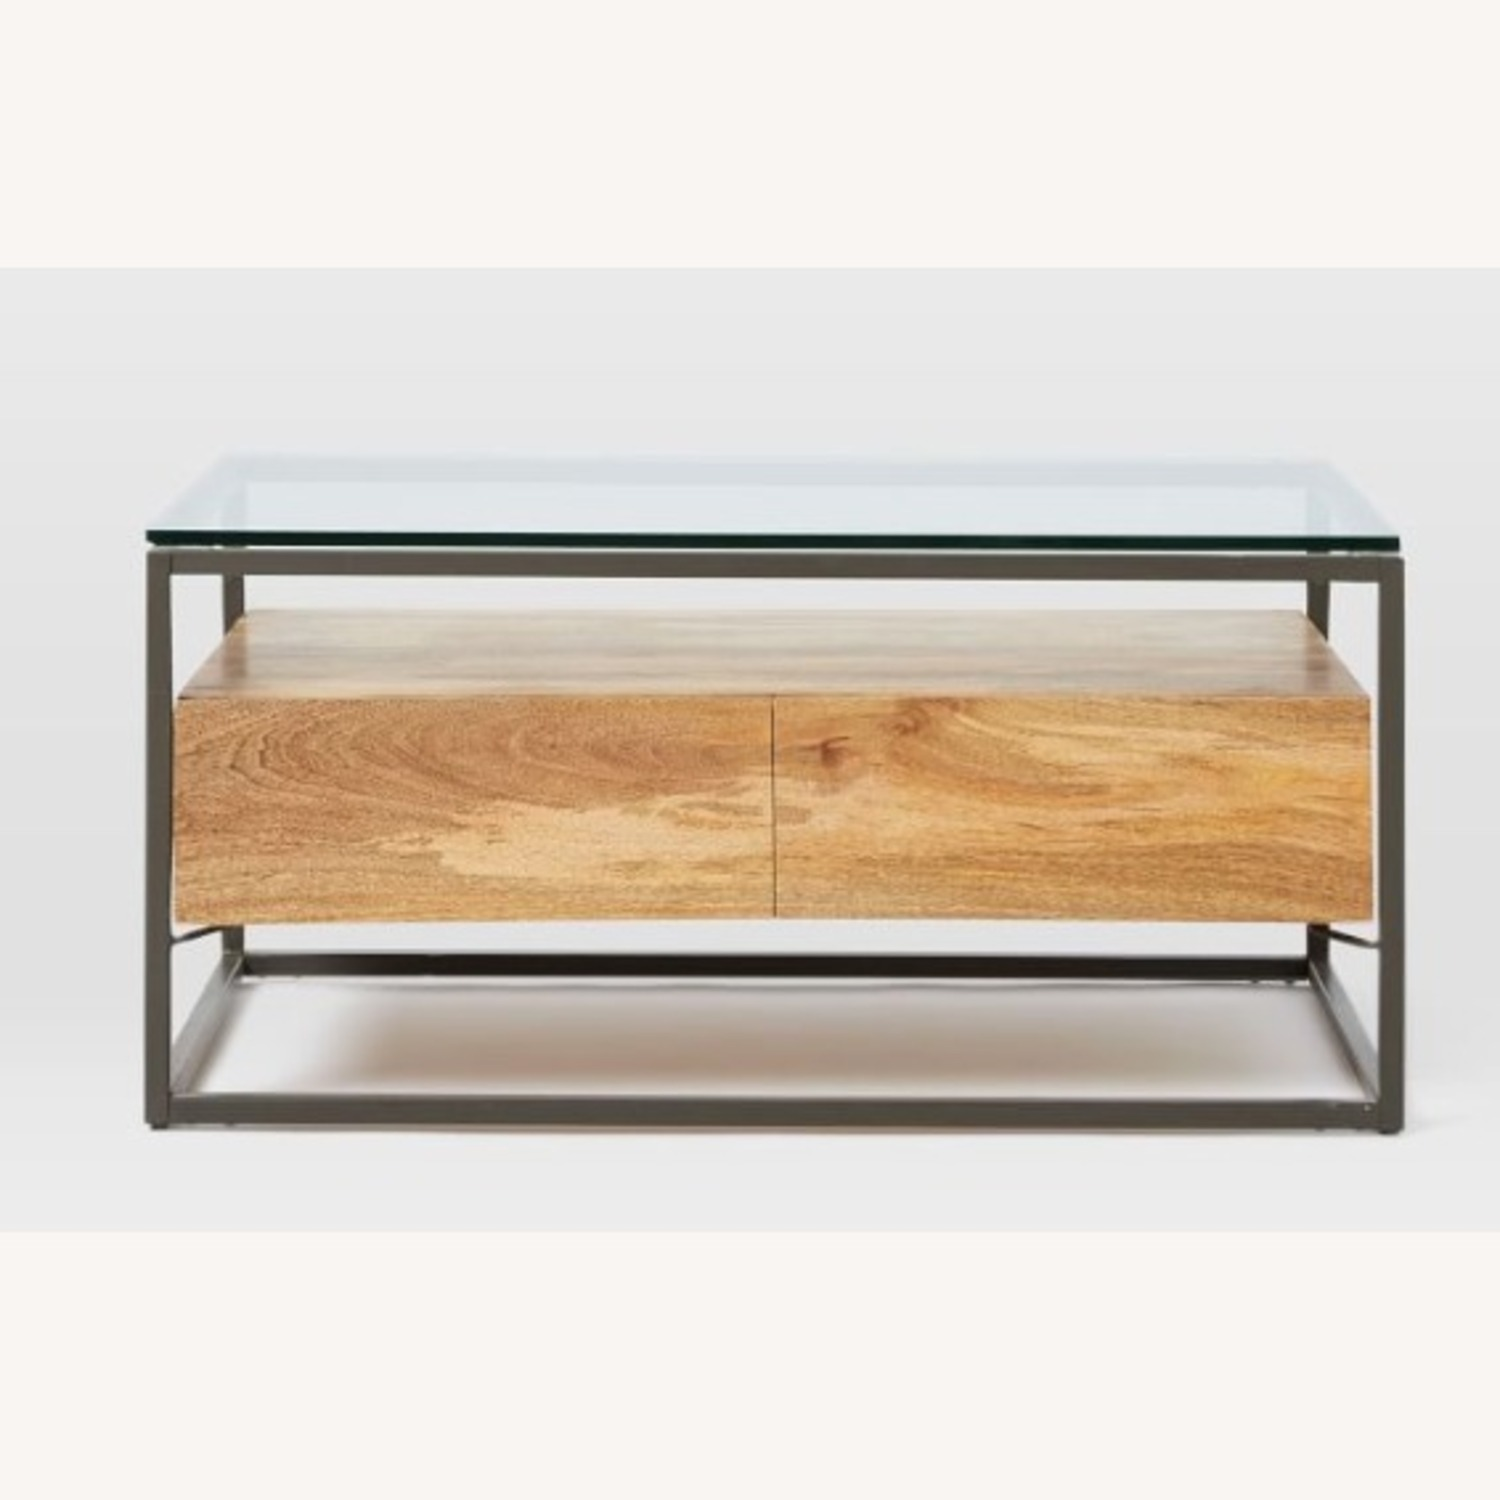 West Elm Box Frame Storage Coffee Table, Raw Mango, Large - image-3